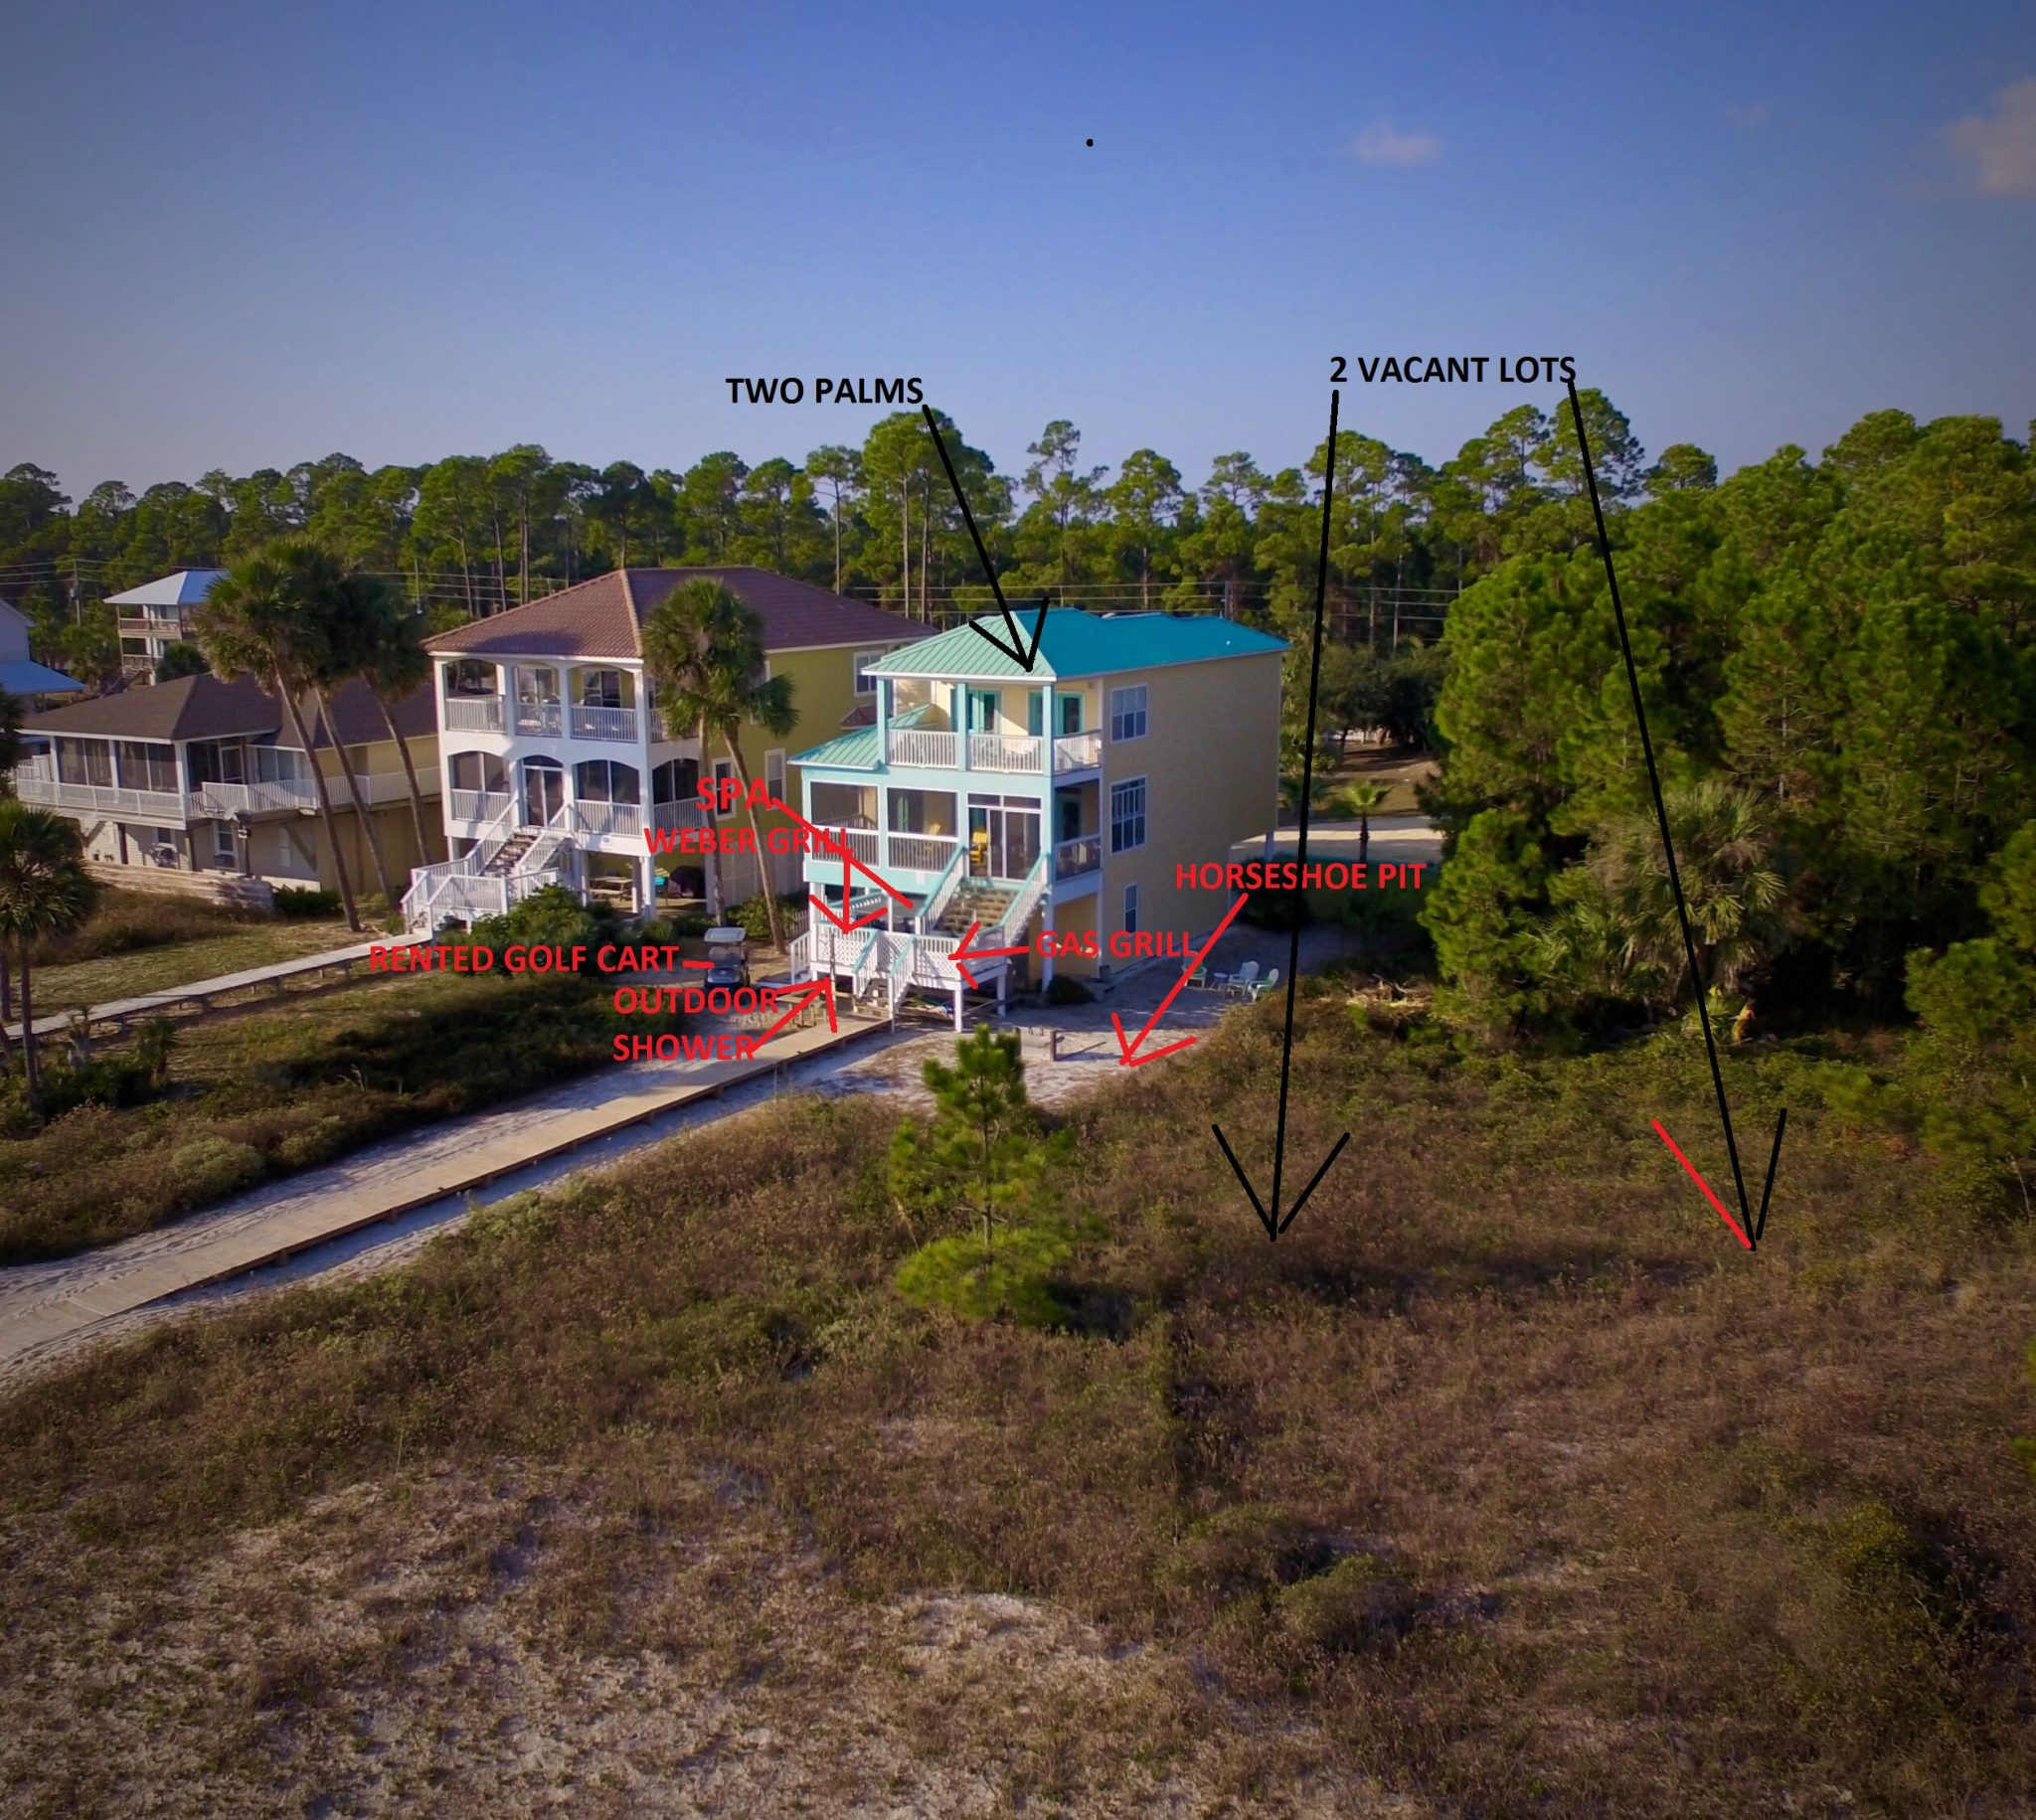 Drone Panoramic Photo of Two Palms Villa